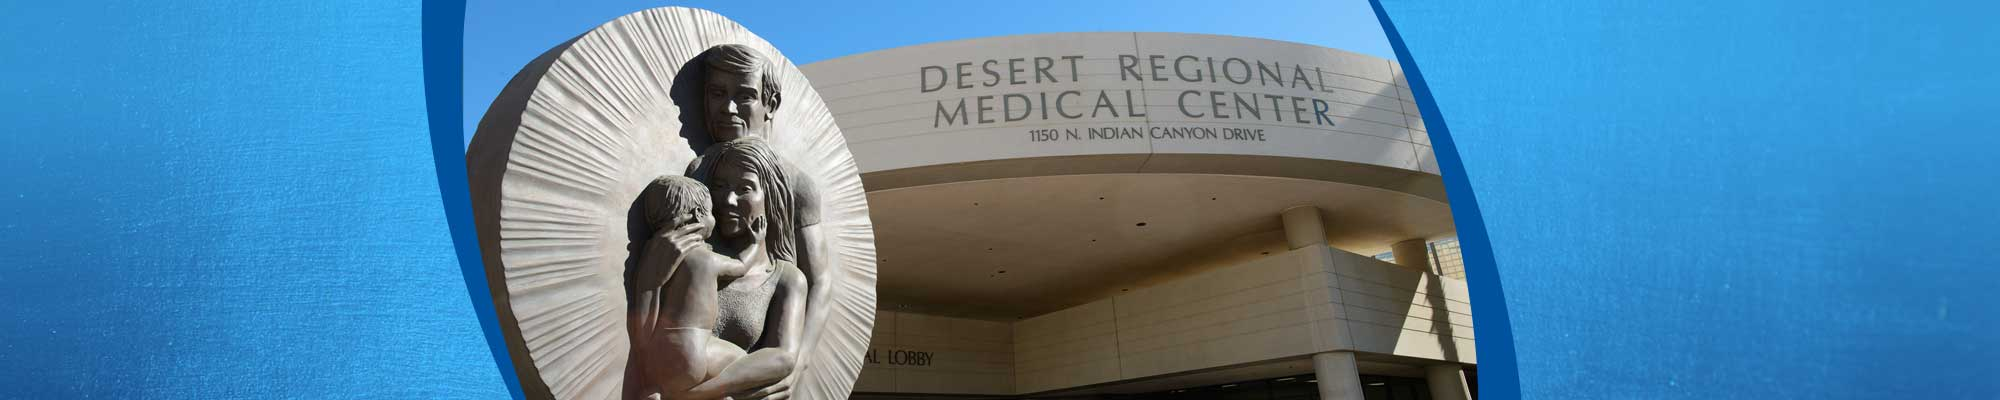 Desert Regional Medical Center exterior.